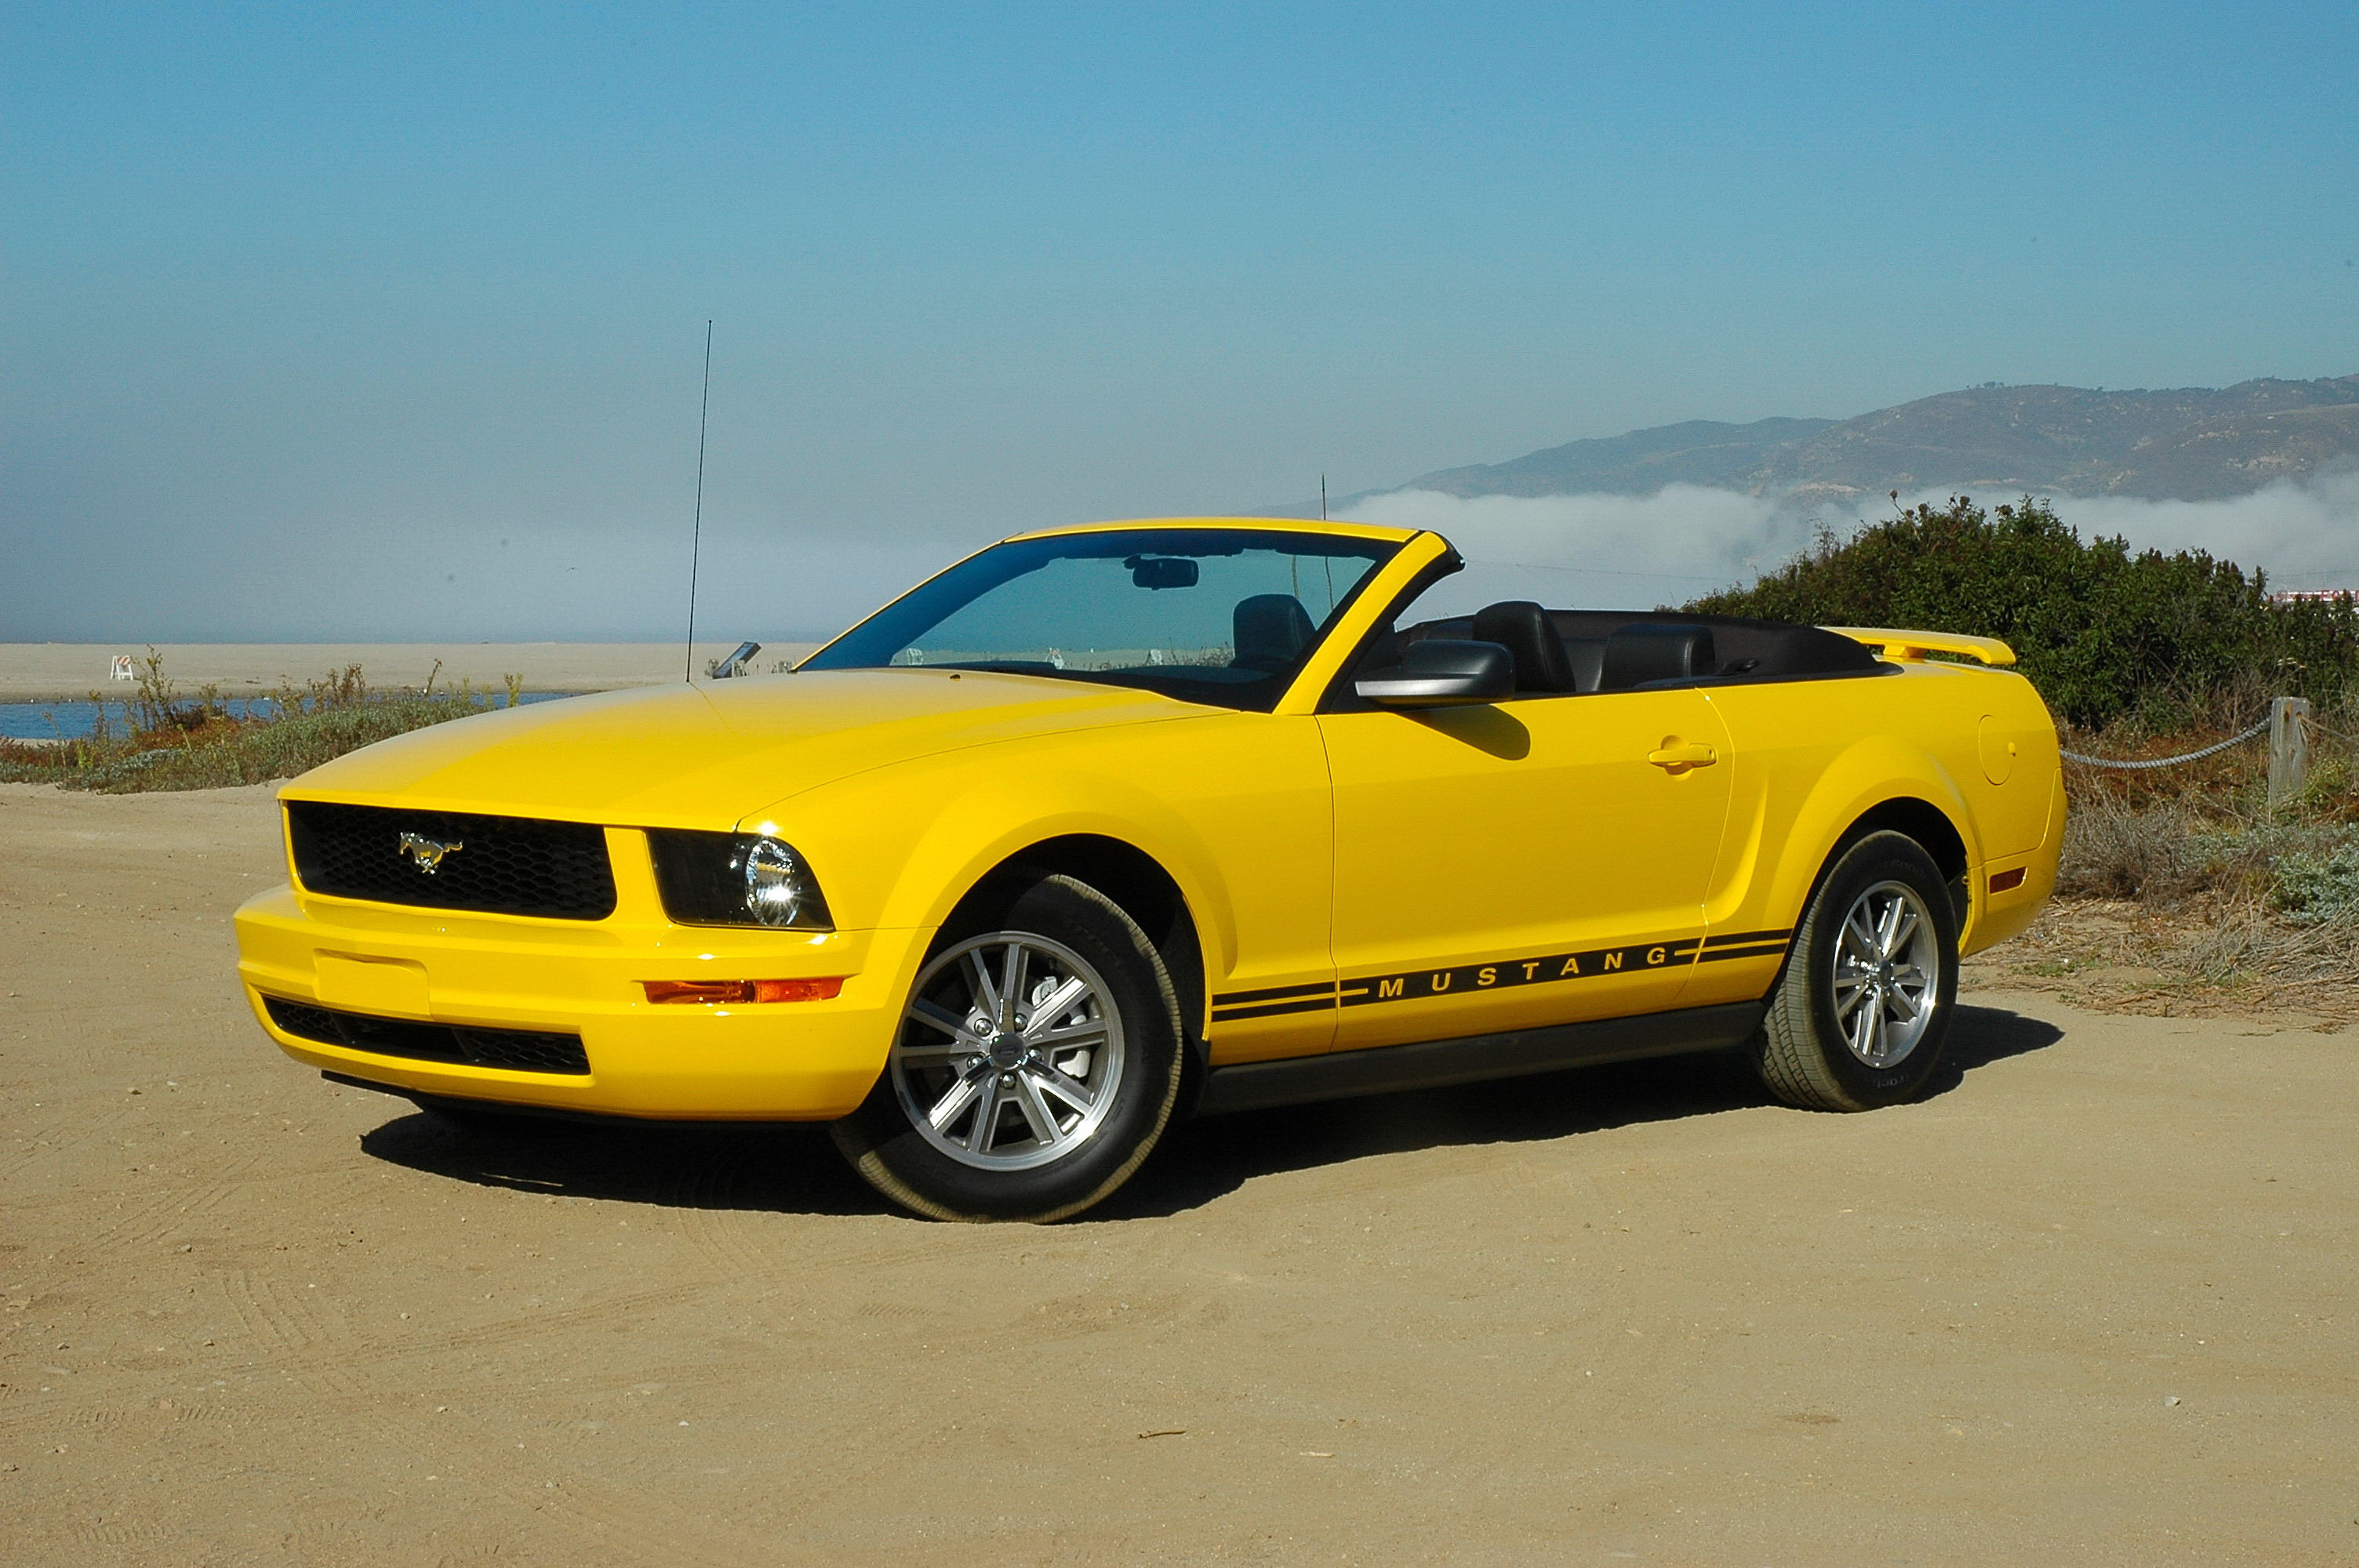 2005 ford mustang v6 convertible wallpaper dow 858 wallpaper. Black Bedroom Furniture Sets. Home Design Ideas